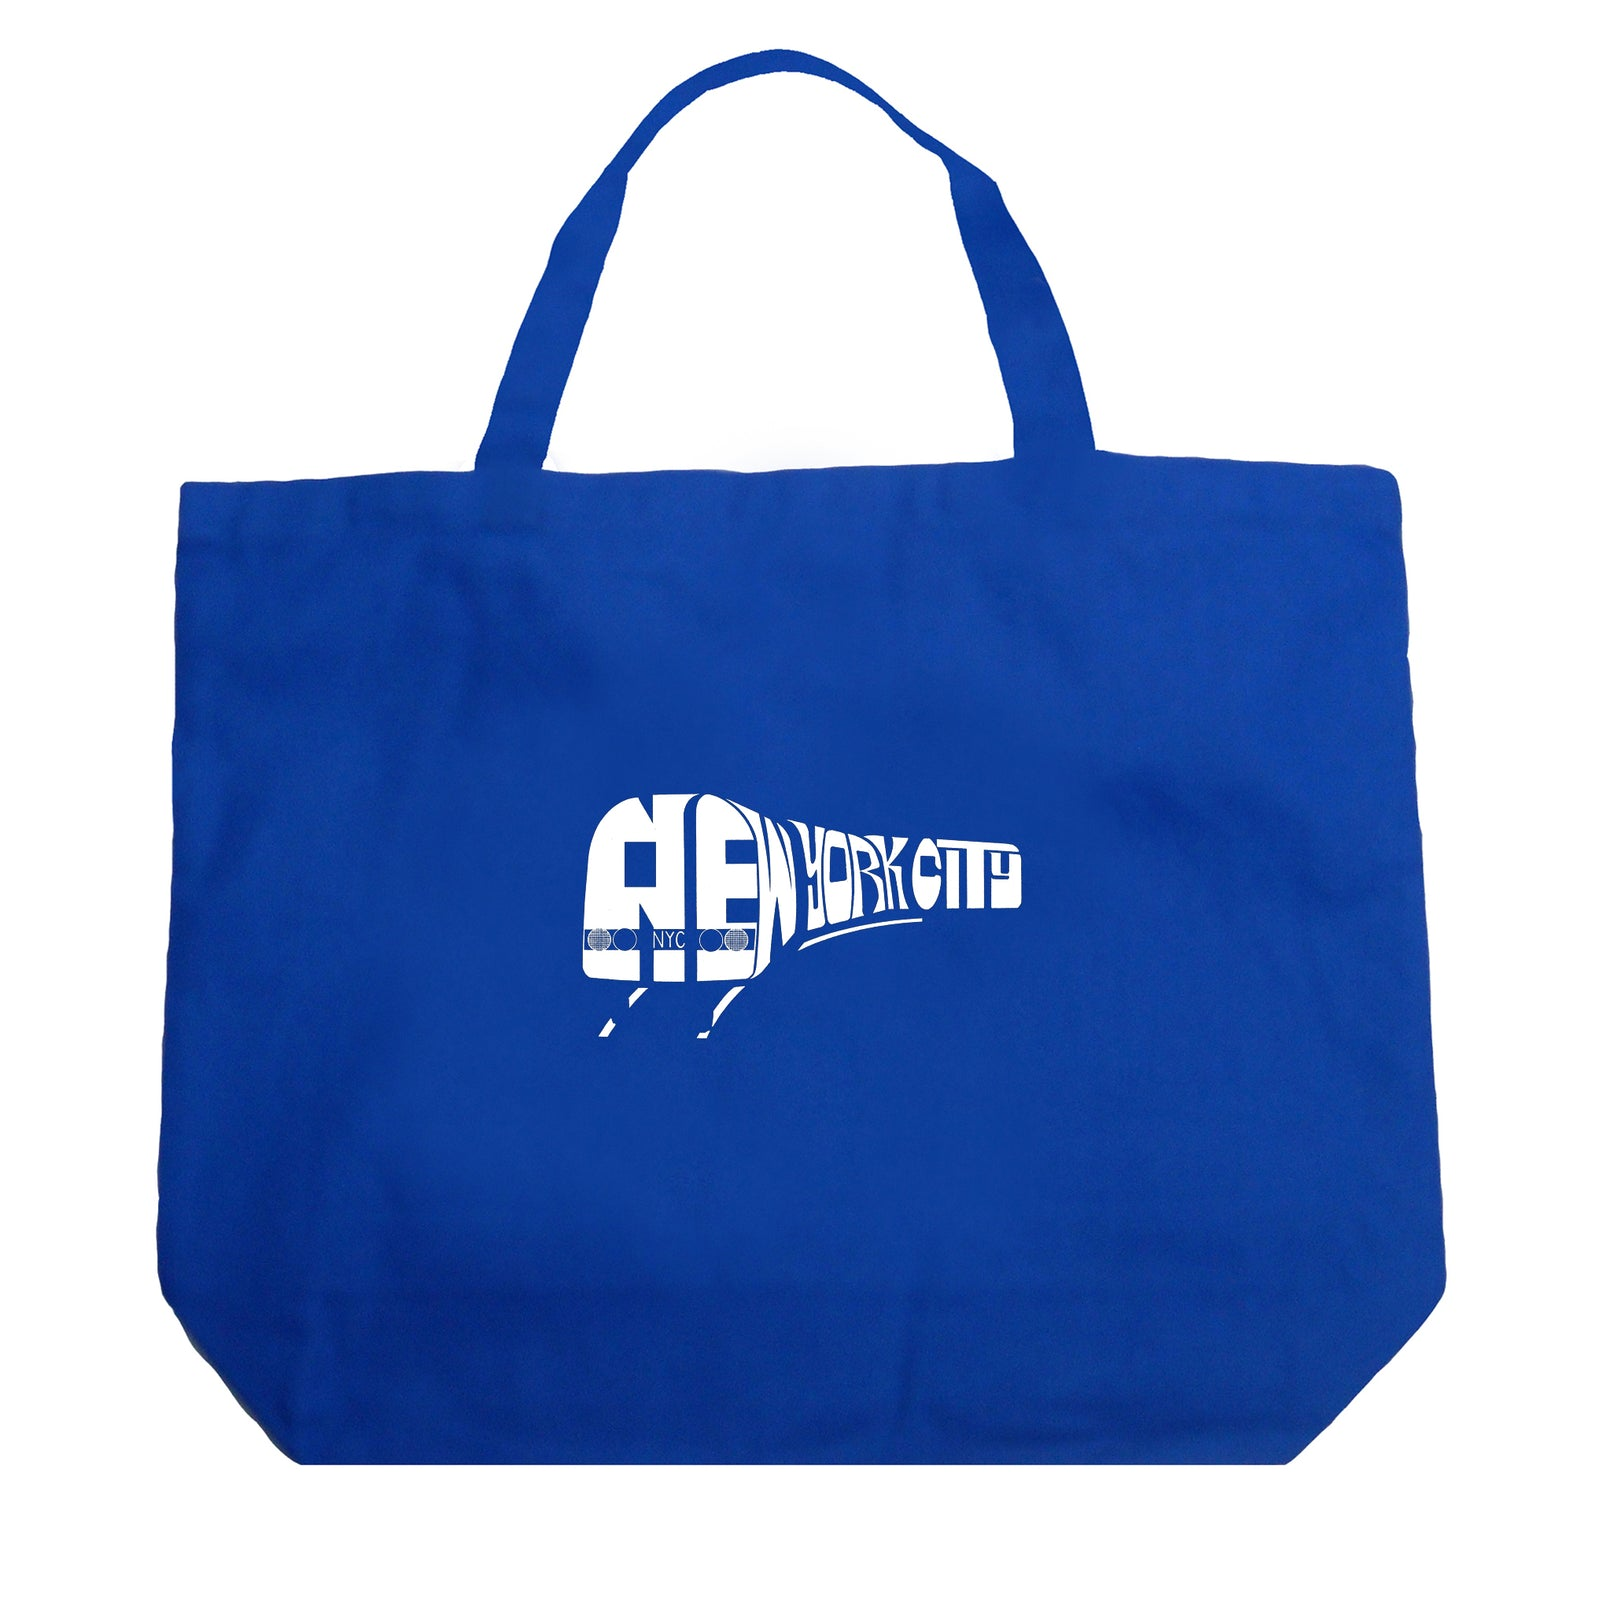 Large Tote Bag - NY SUBWAY